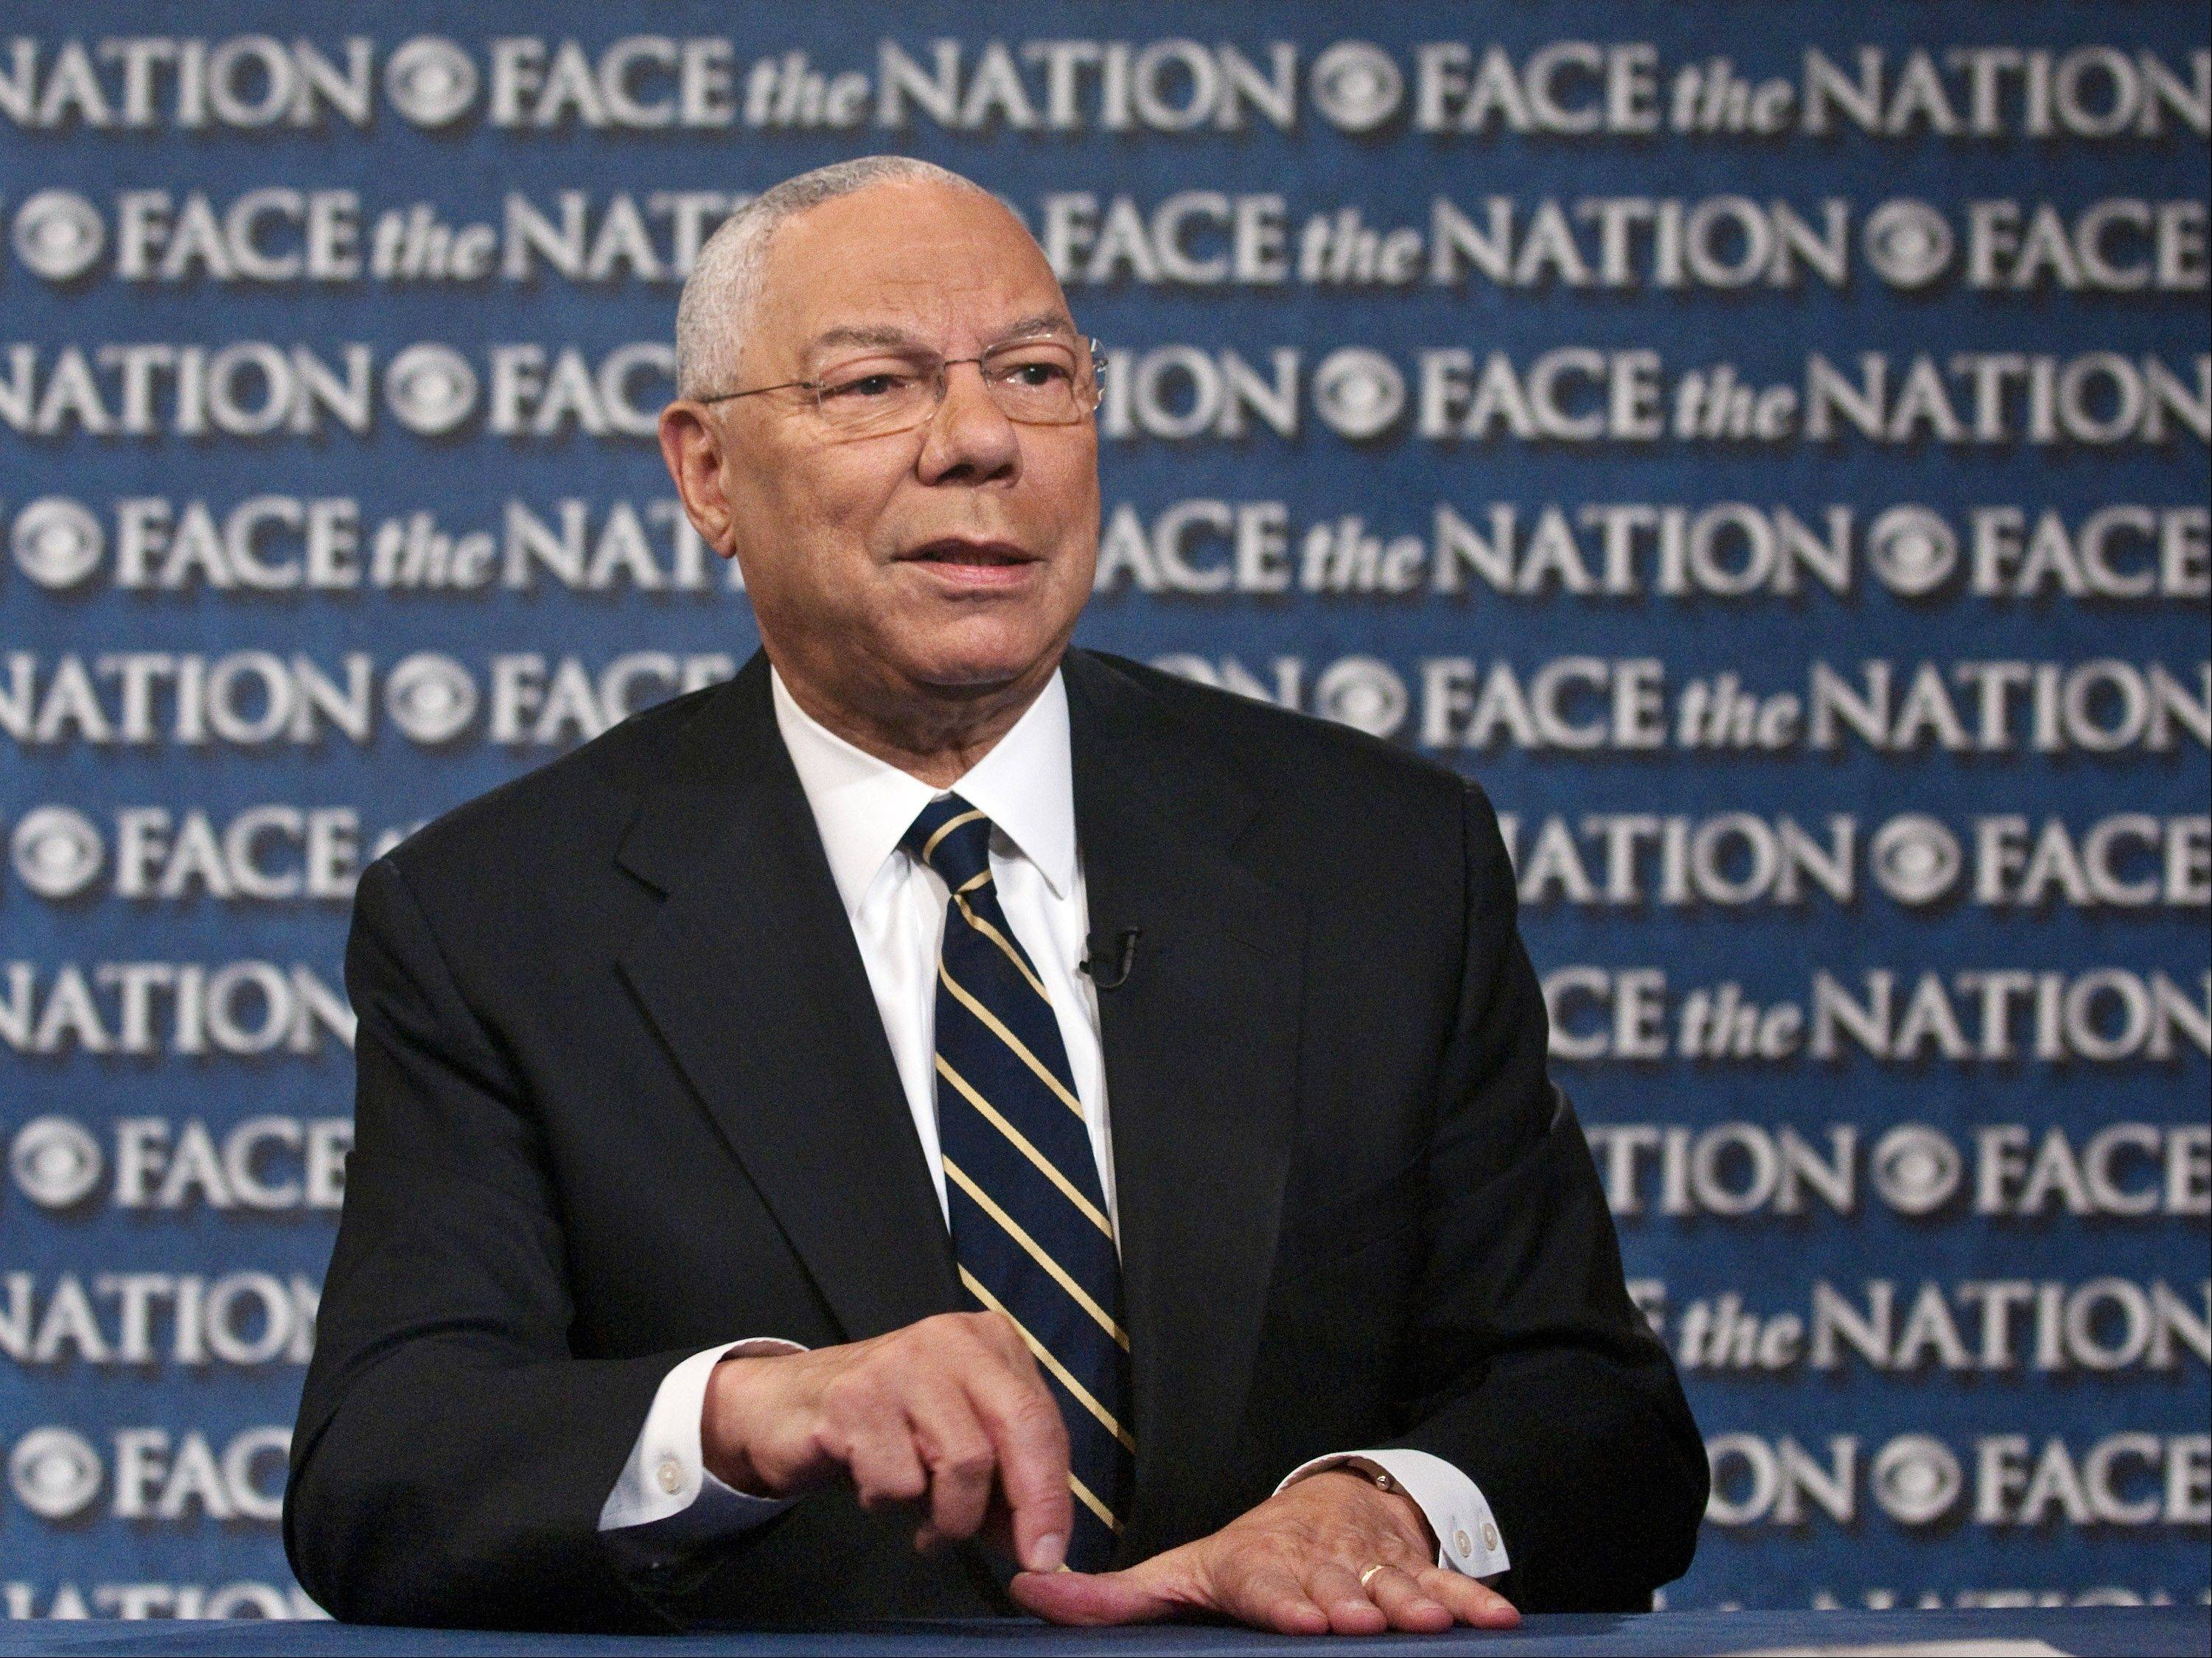 ASSOCIATED PRESS Former Secretary of State Colin Powell says America has come a long way toward racial equality 50 years after Martin Luther King Jr.�s �I Have a Dream� speech, but urged President Barack Obama to do more.